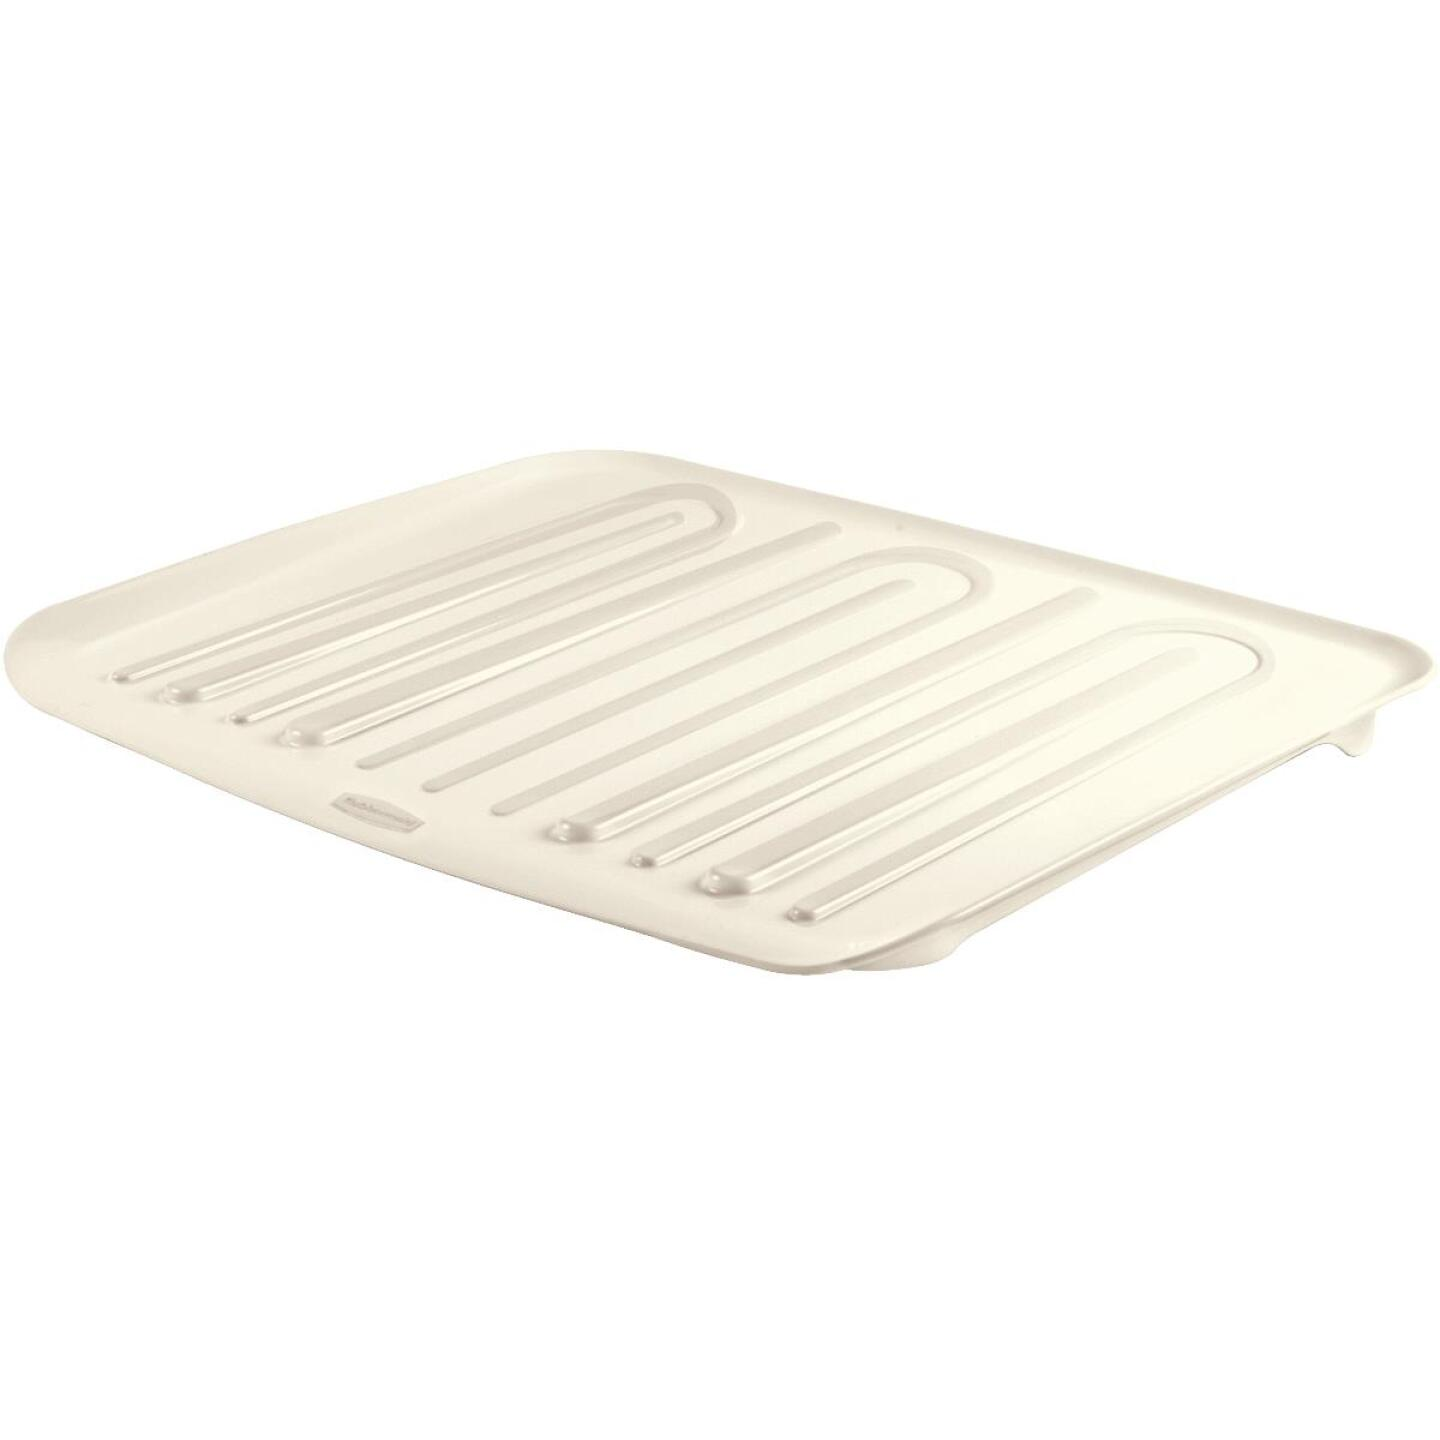 Rubbermaid 14.7 In. x 18 In. Bisque Sloped Drainer Tray Image 2